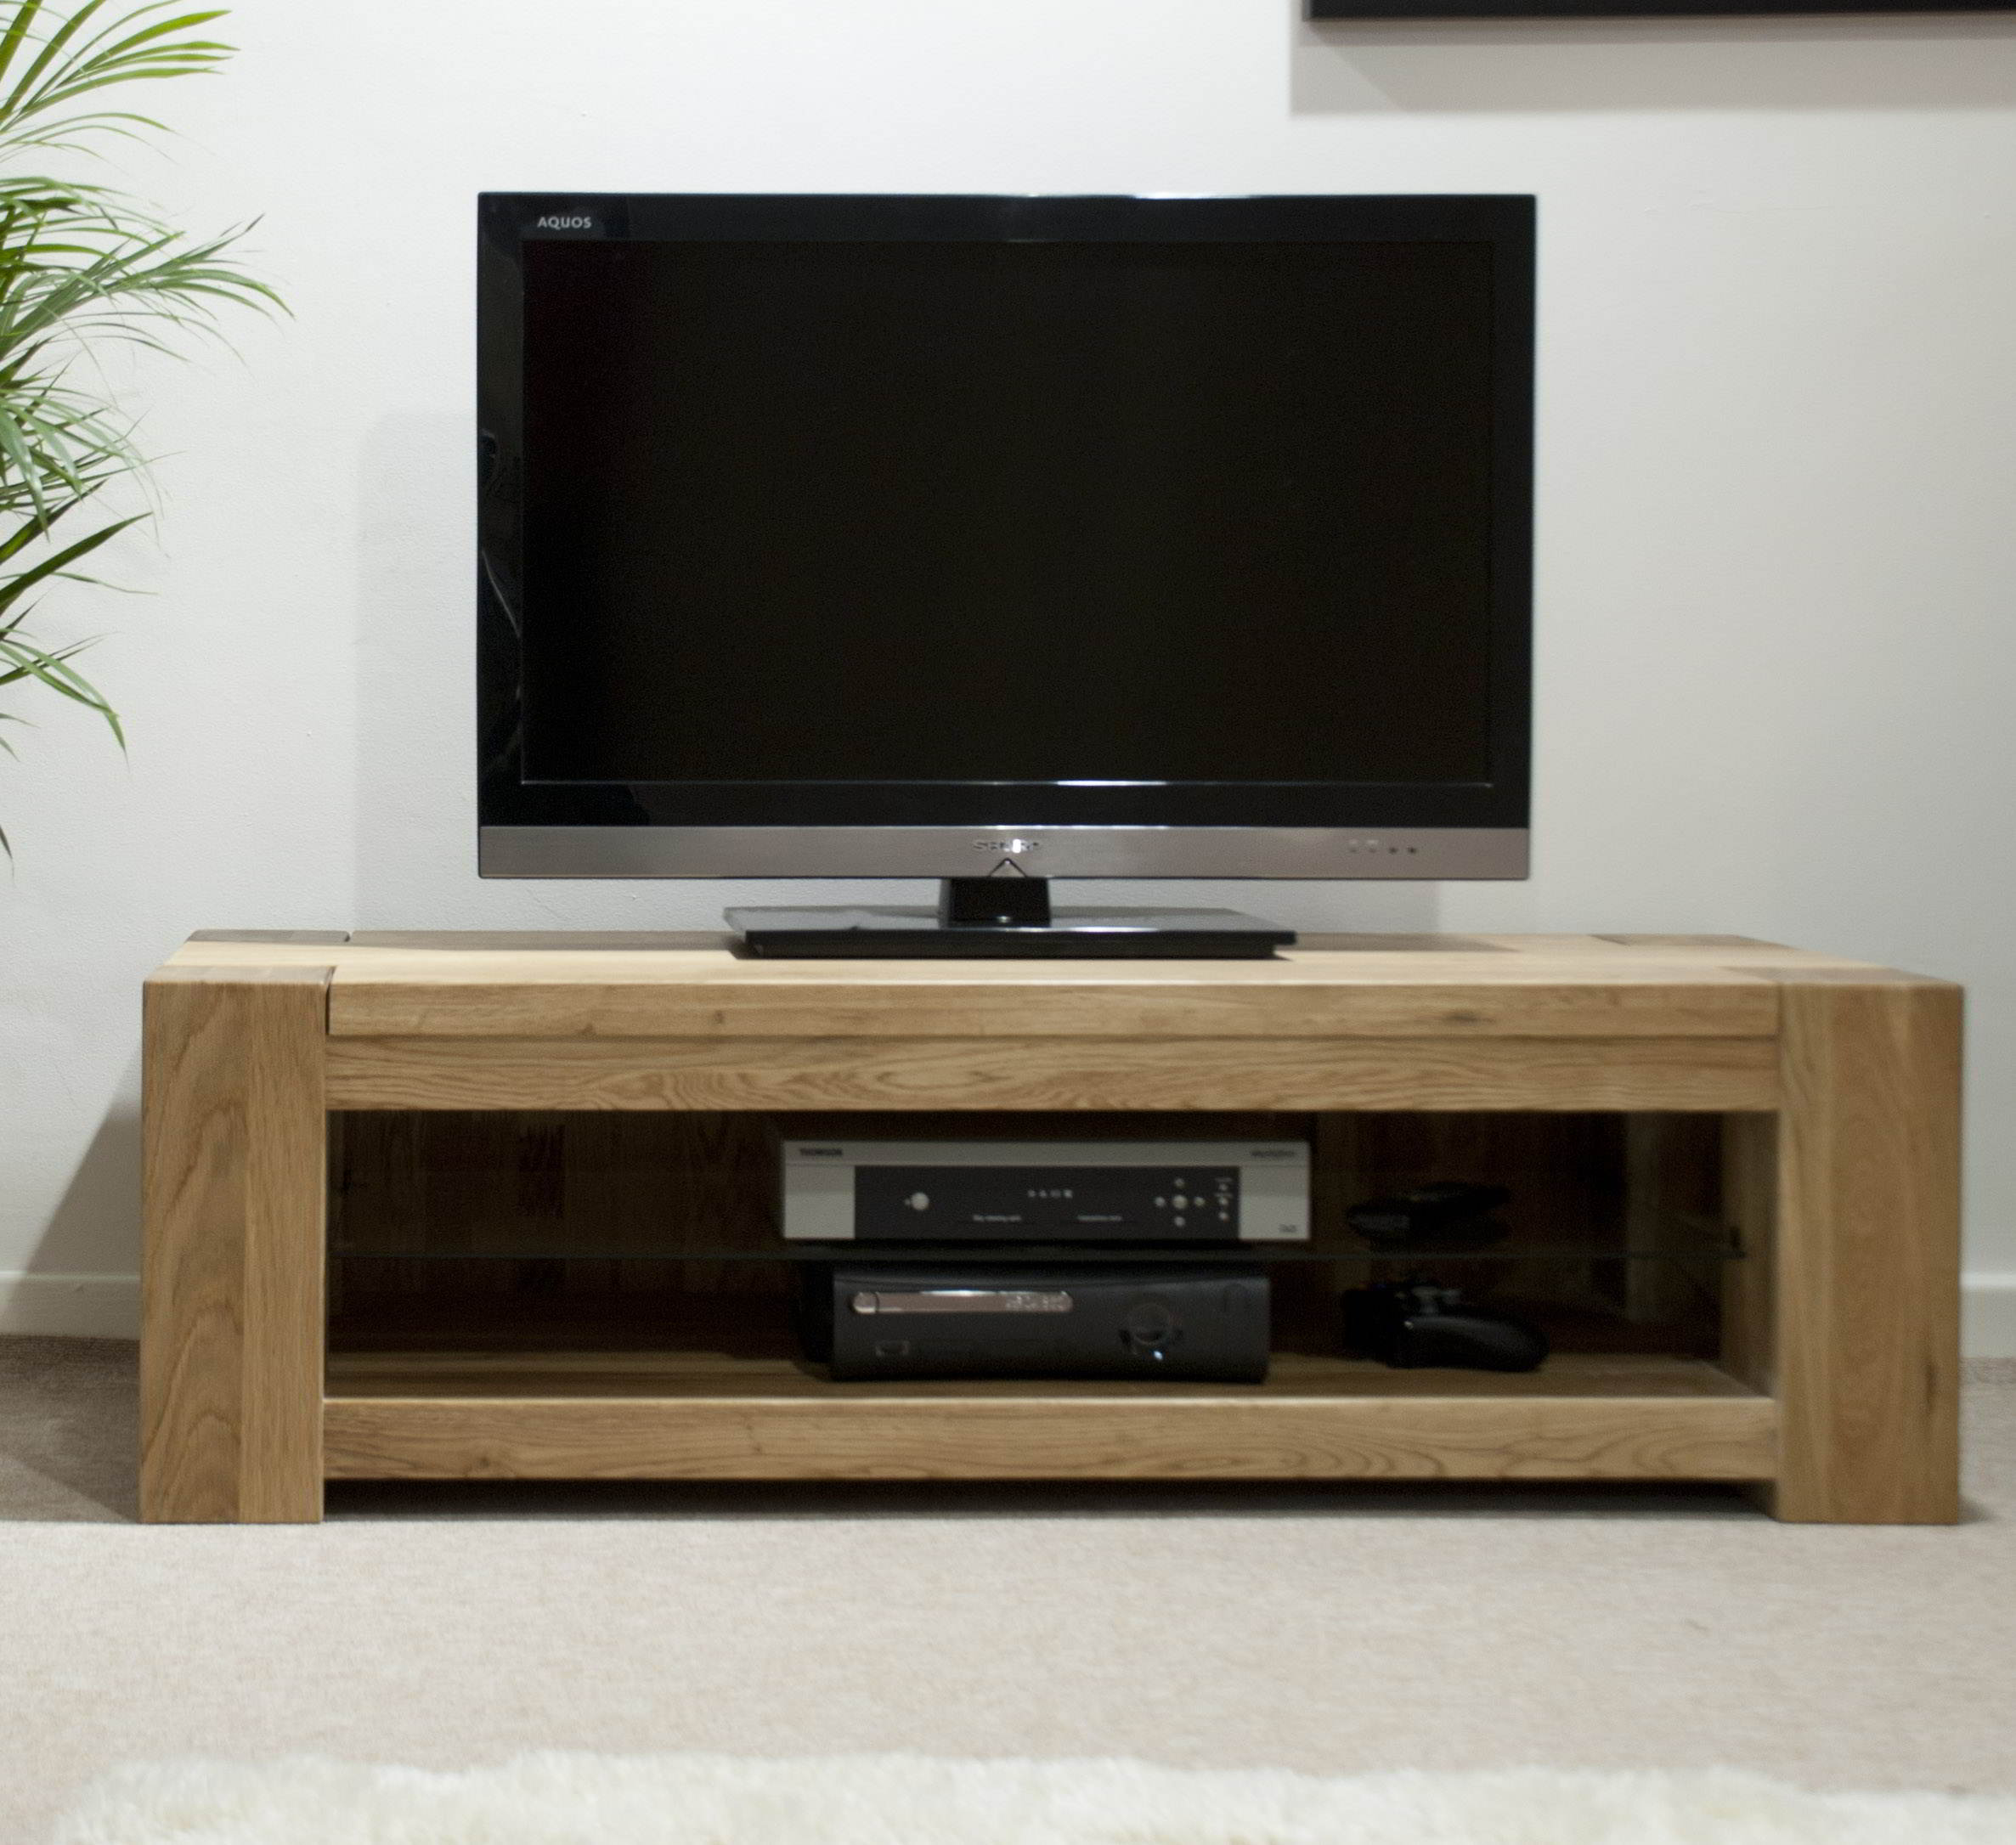 Padova solid oak furniture plasma television cabinet stand for White plasma tv stands